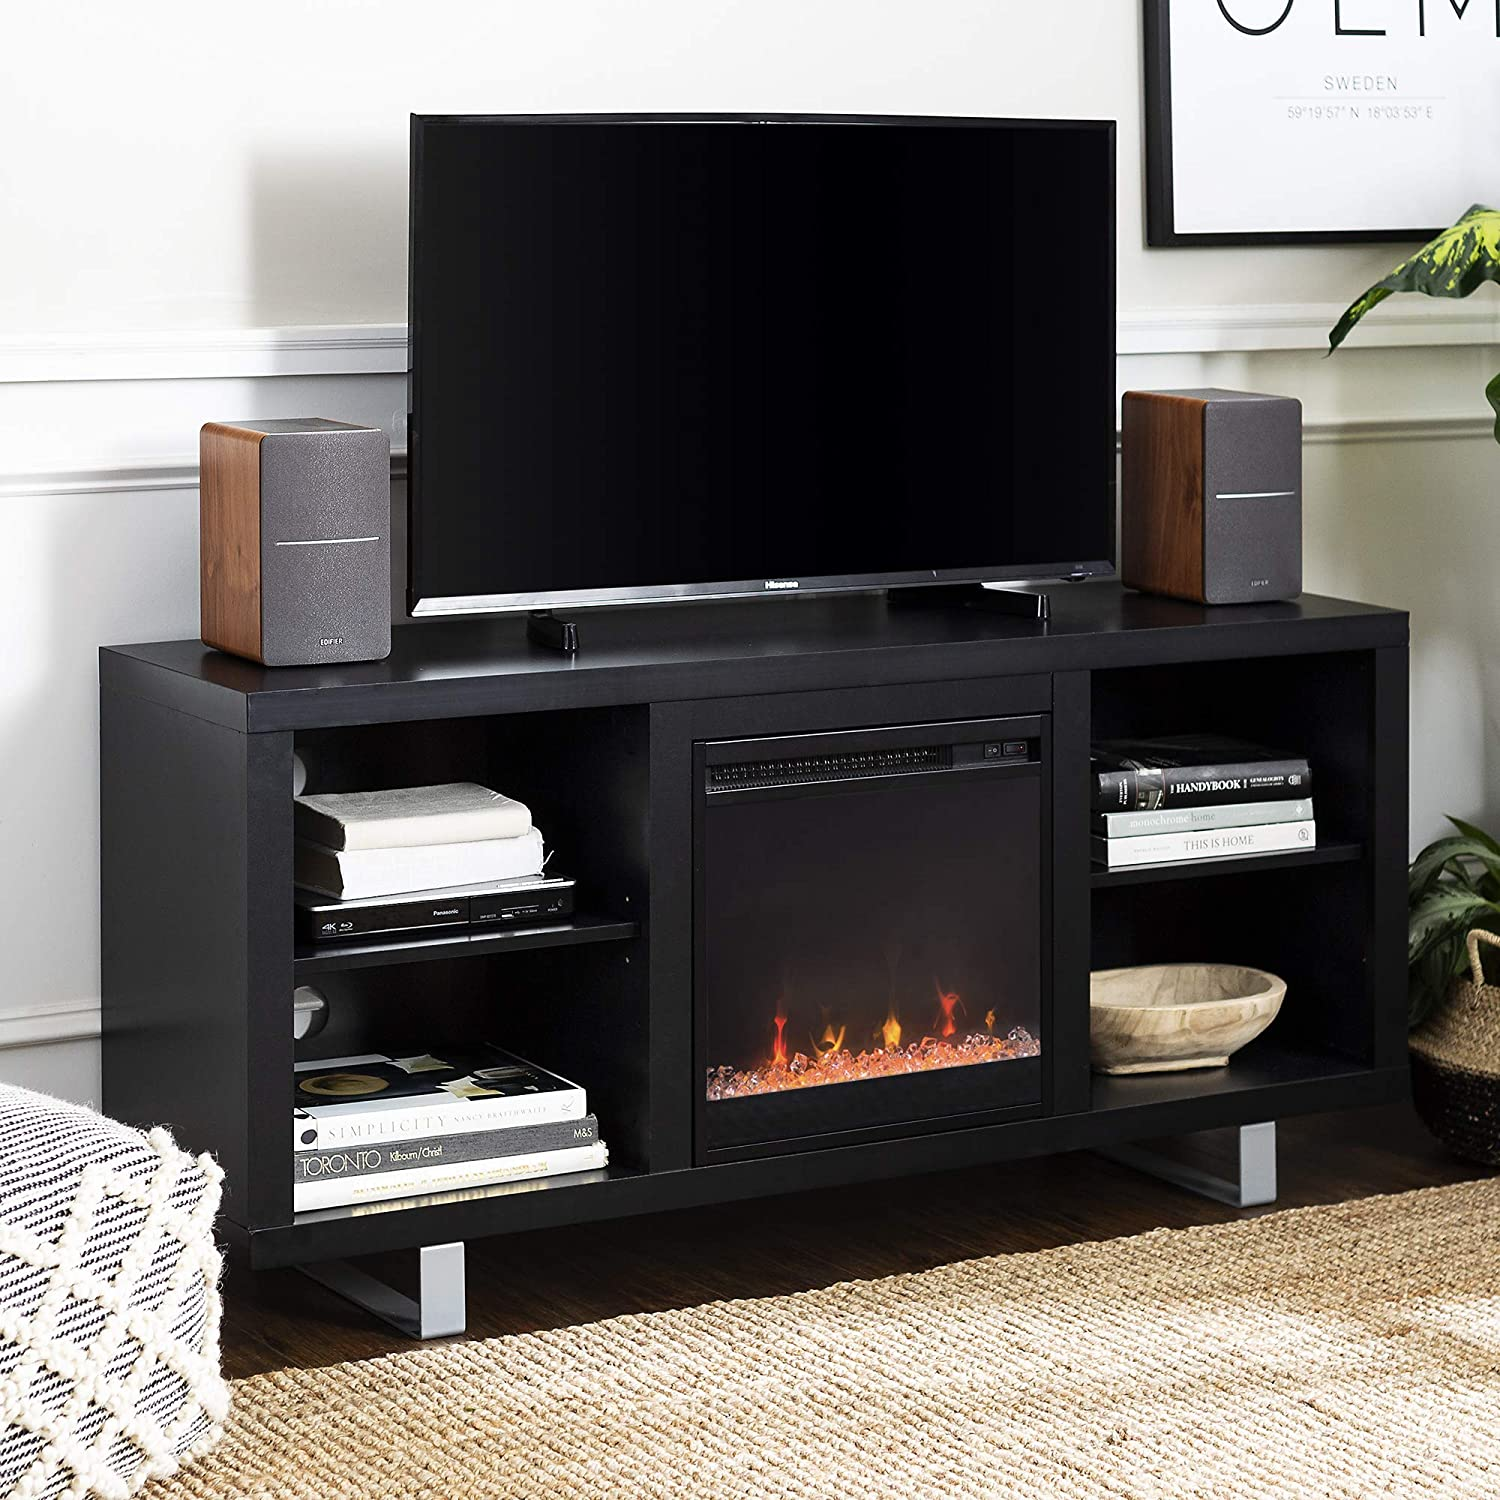 Walker Edison Modern Wood And Metal Fireplace Stand For Tv S Up To 64 Flat Screen Living Room Storage Shelves Entertainment Center Black Az58fp18smsb Furniture Decor